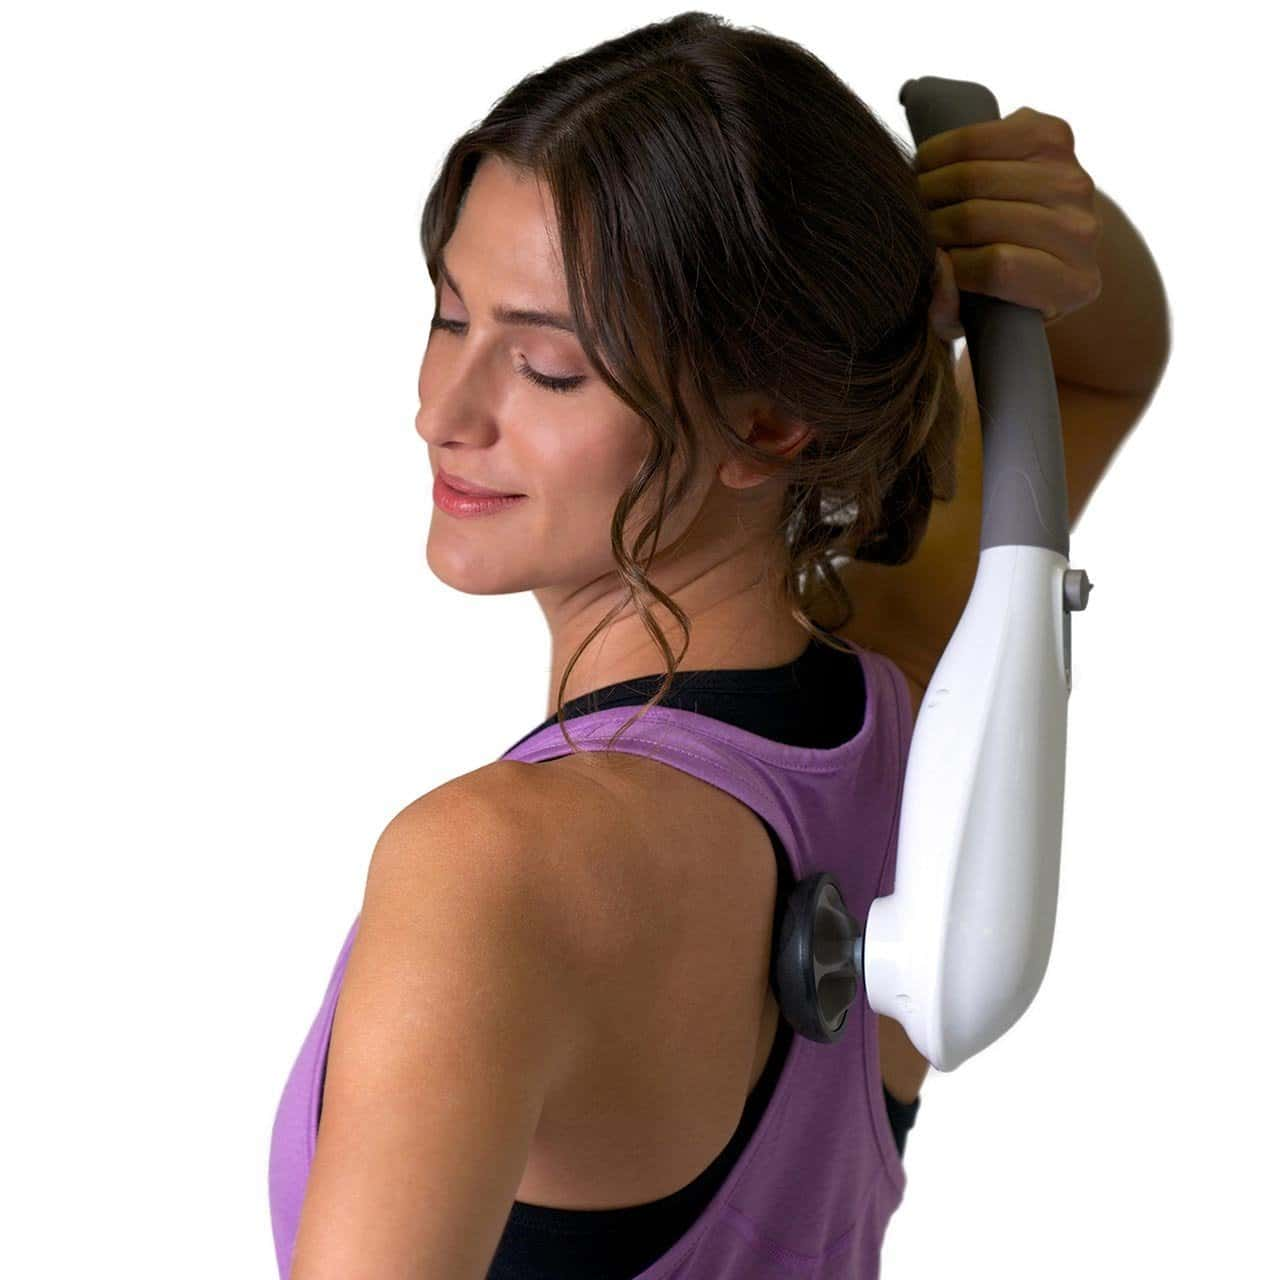 Top 10 Best Handheld Electric Back Massagers In 2020 Review